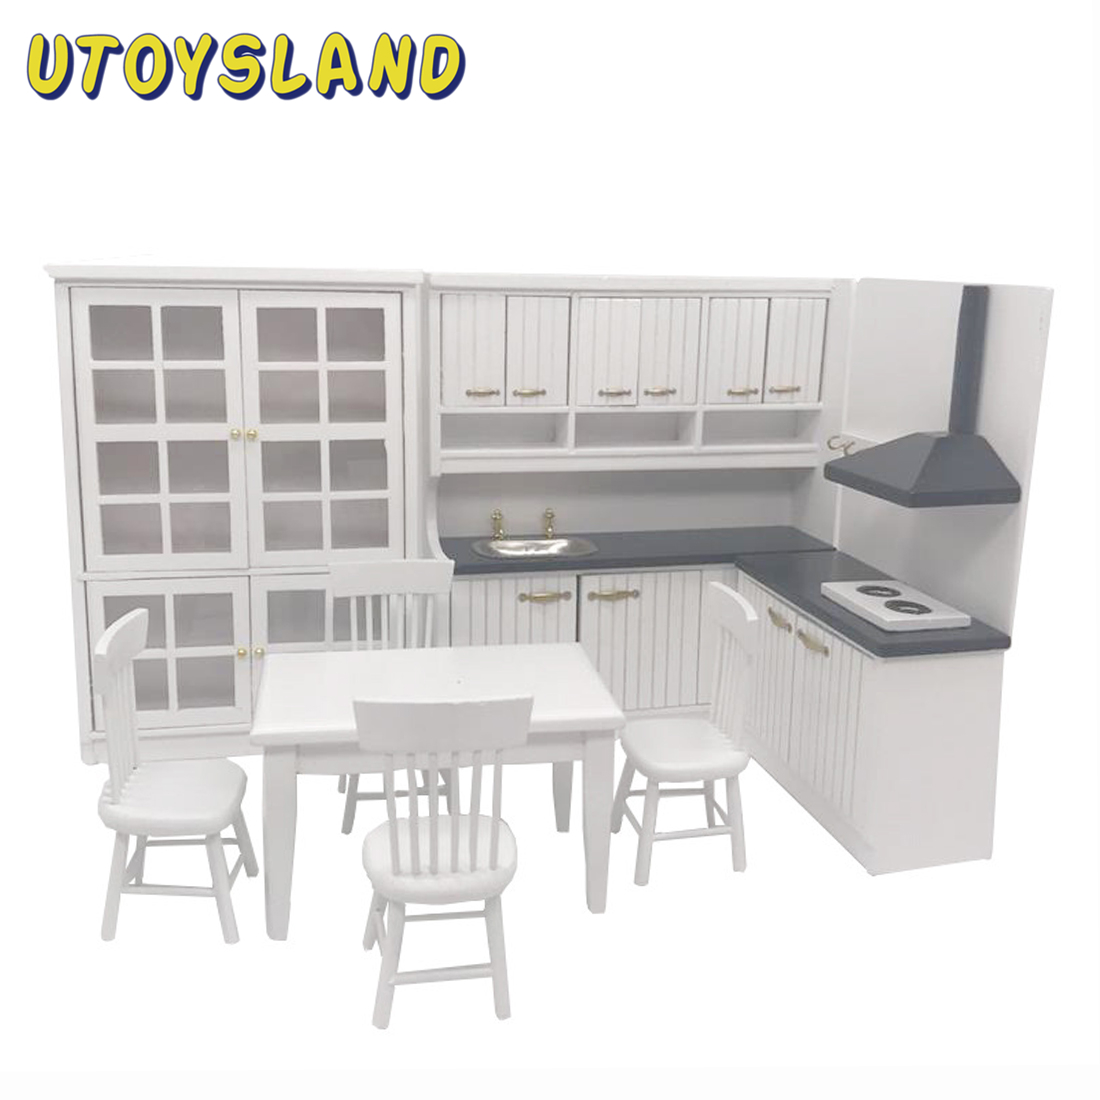 Doll House 1/12 Scale Furniture Diy Miniature Dollhouse Kitchen Furniture Model Kit Dollhouse Toys For Children Birthday Gifts